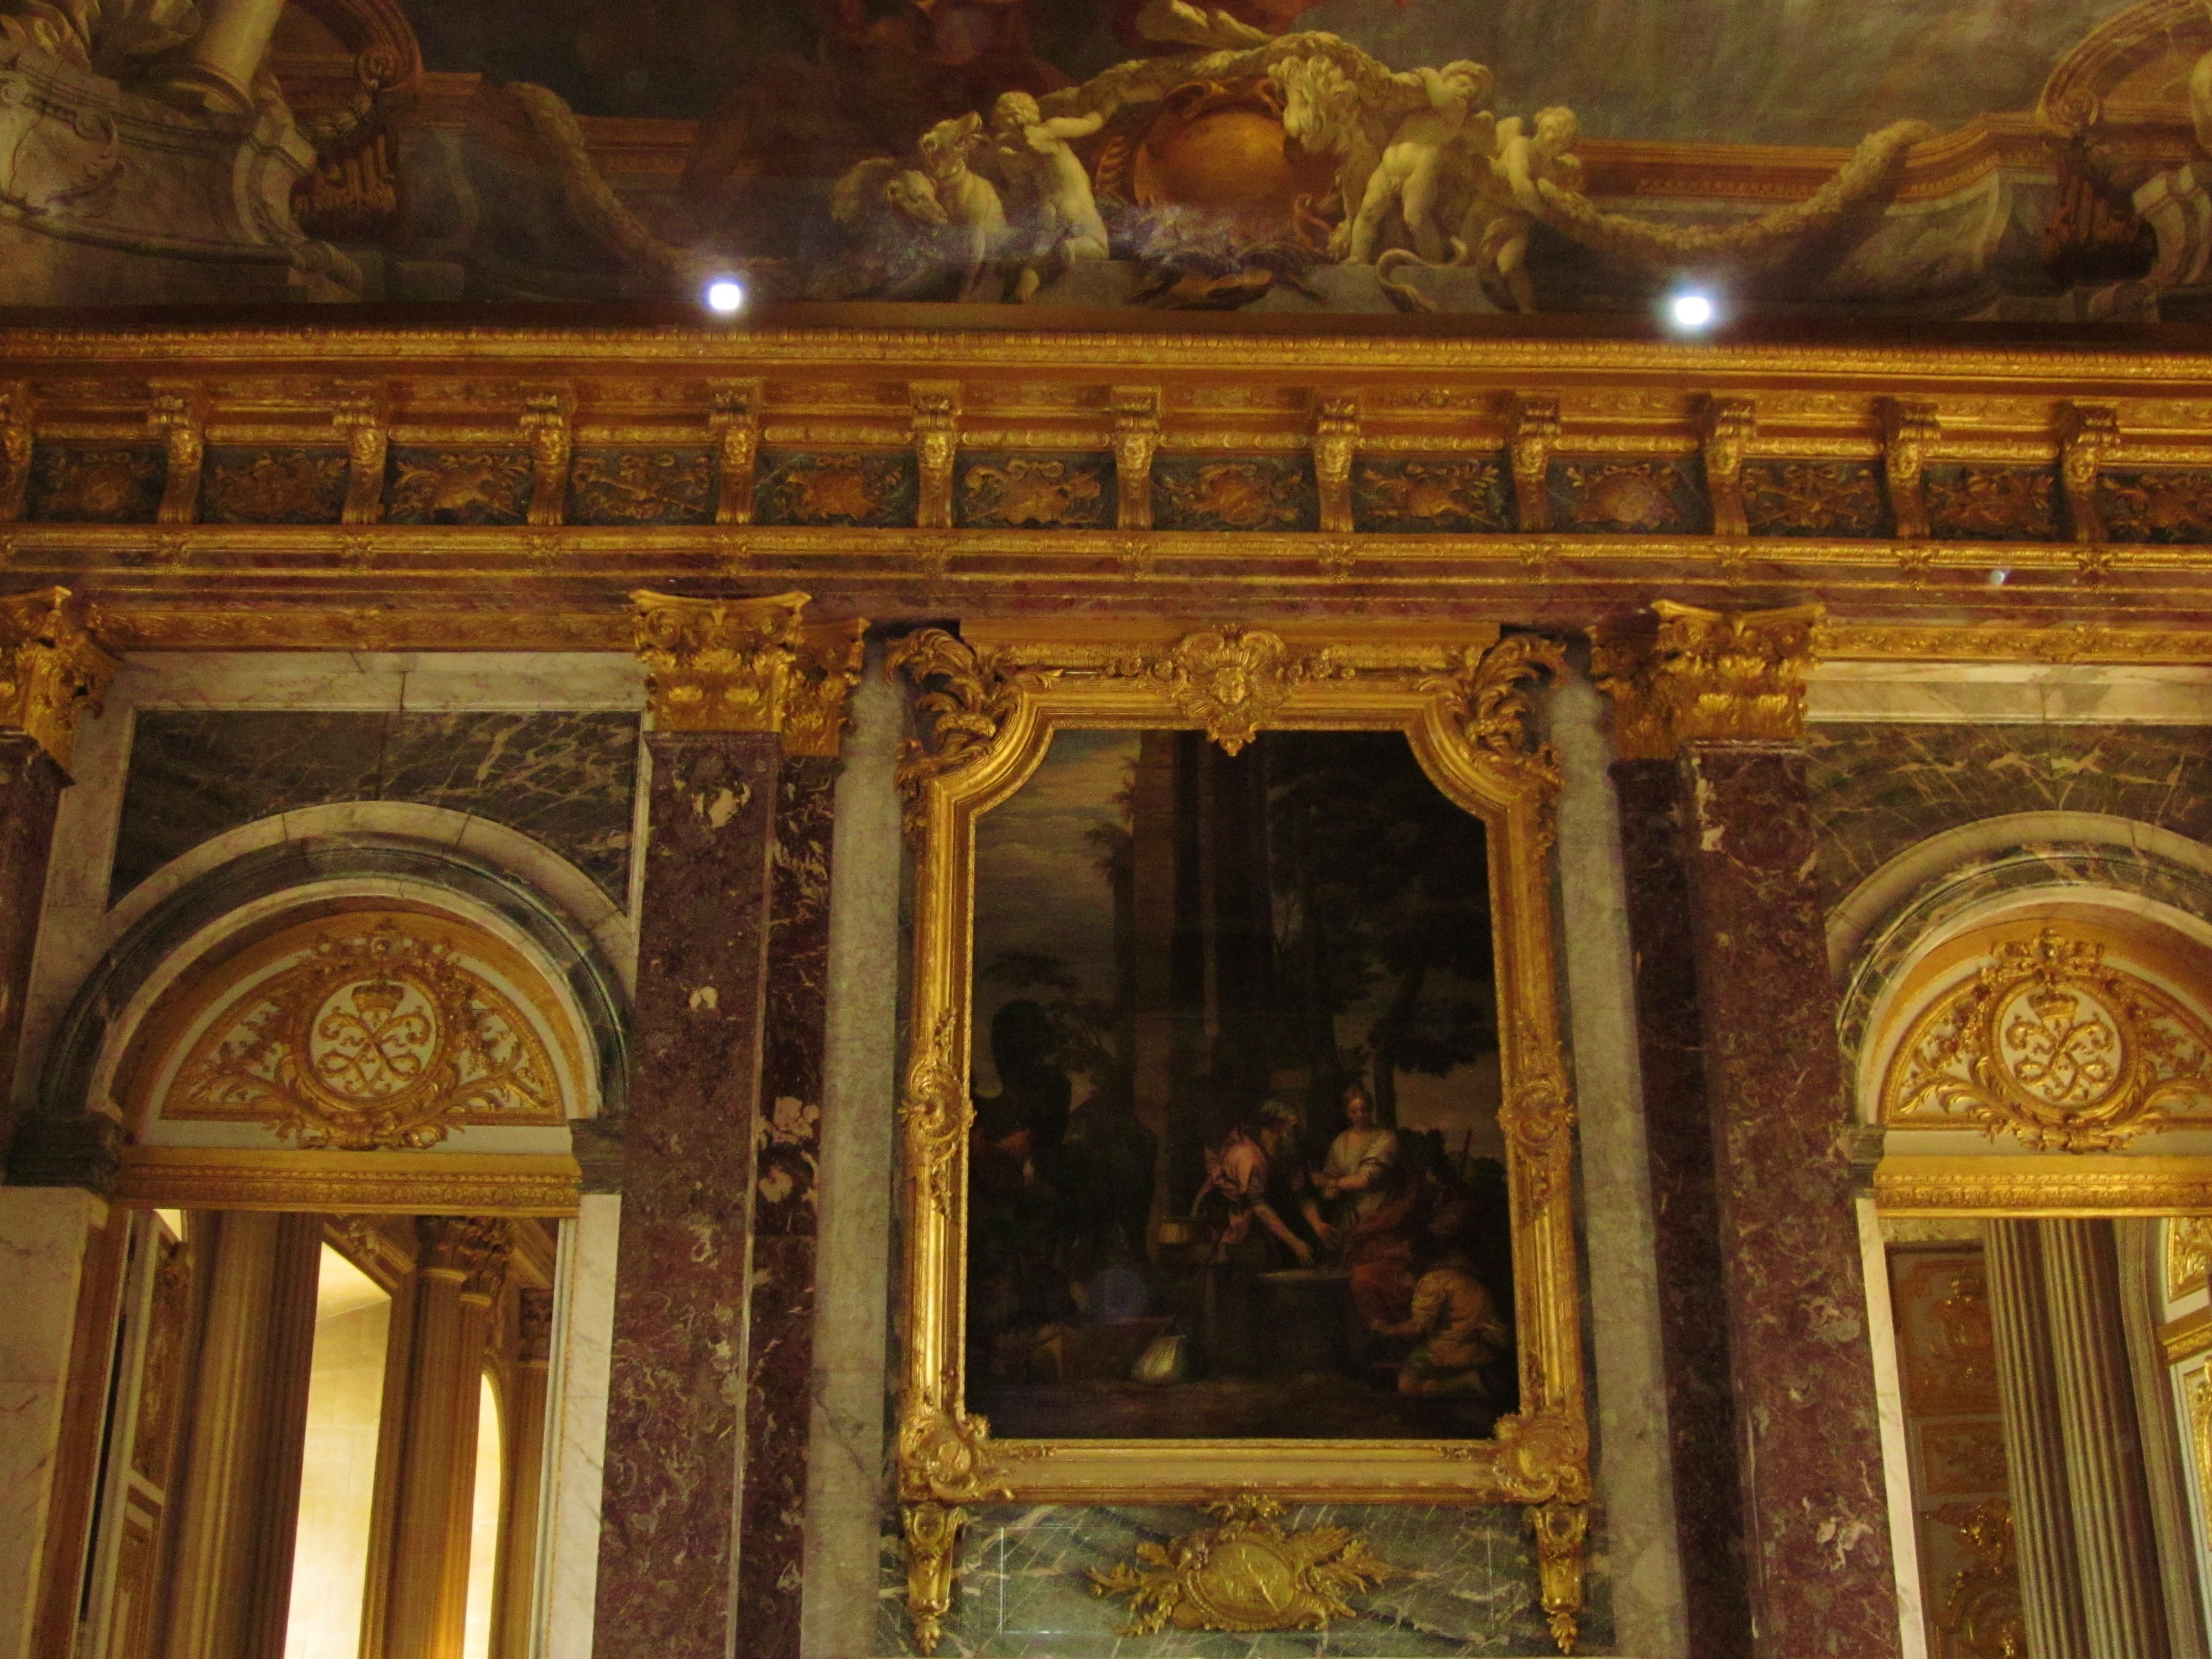 Inside Palace Of Versailles Paris La Ville Lumiere